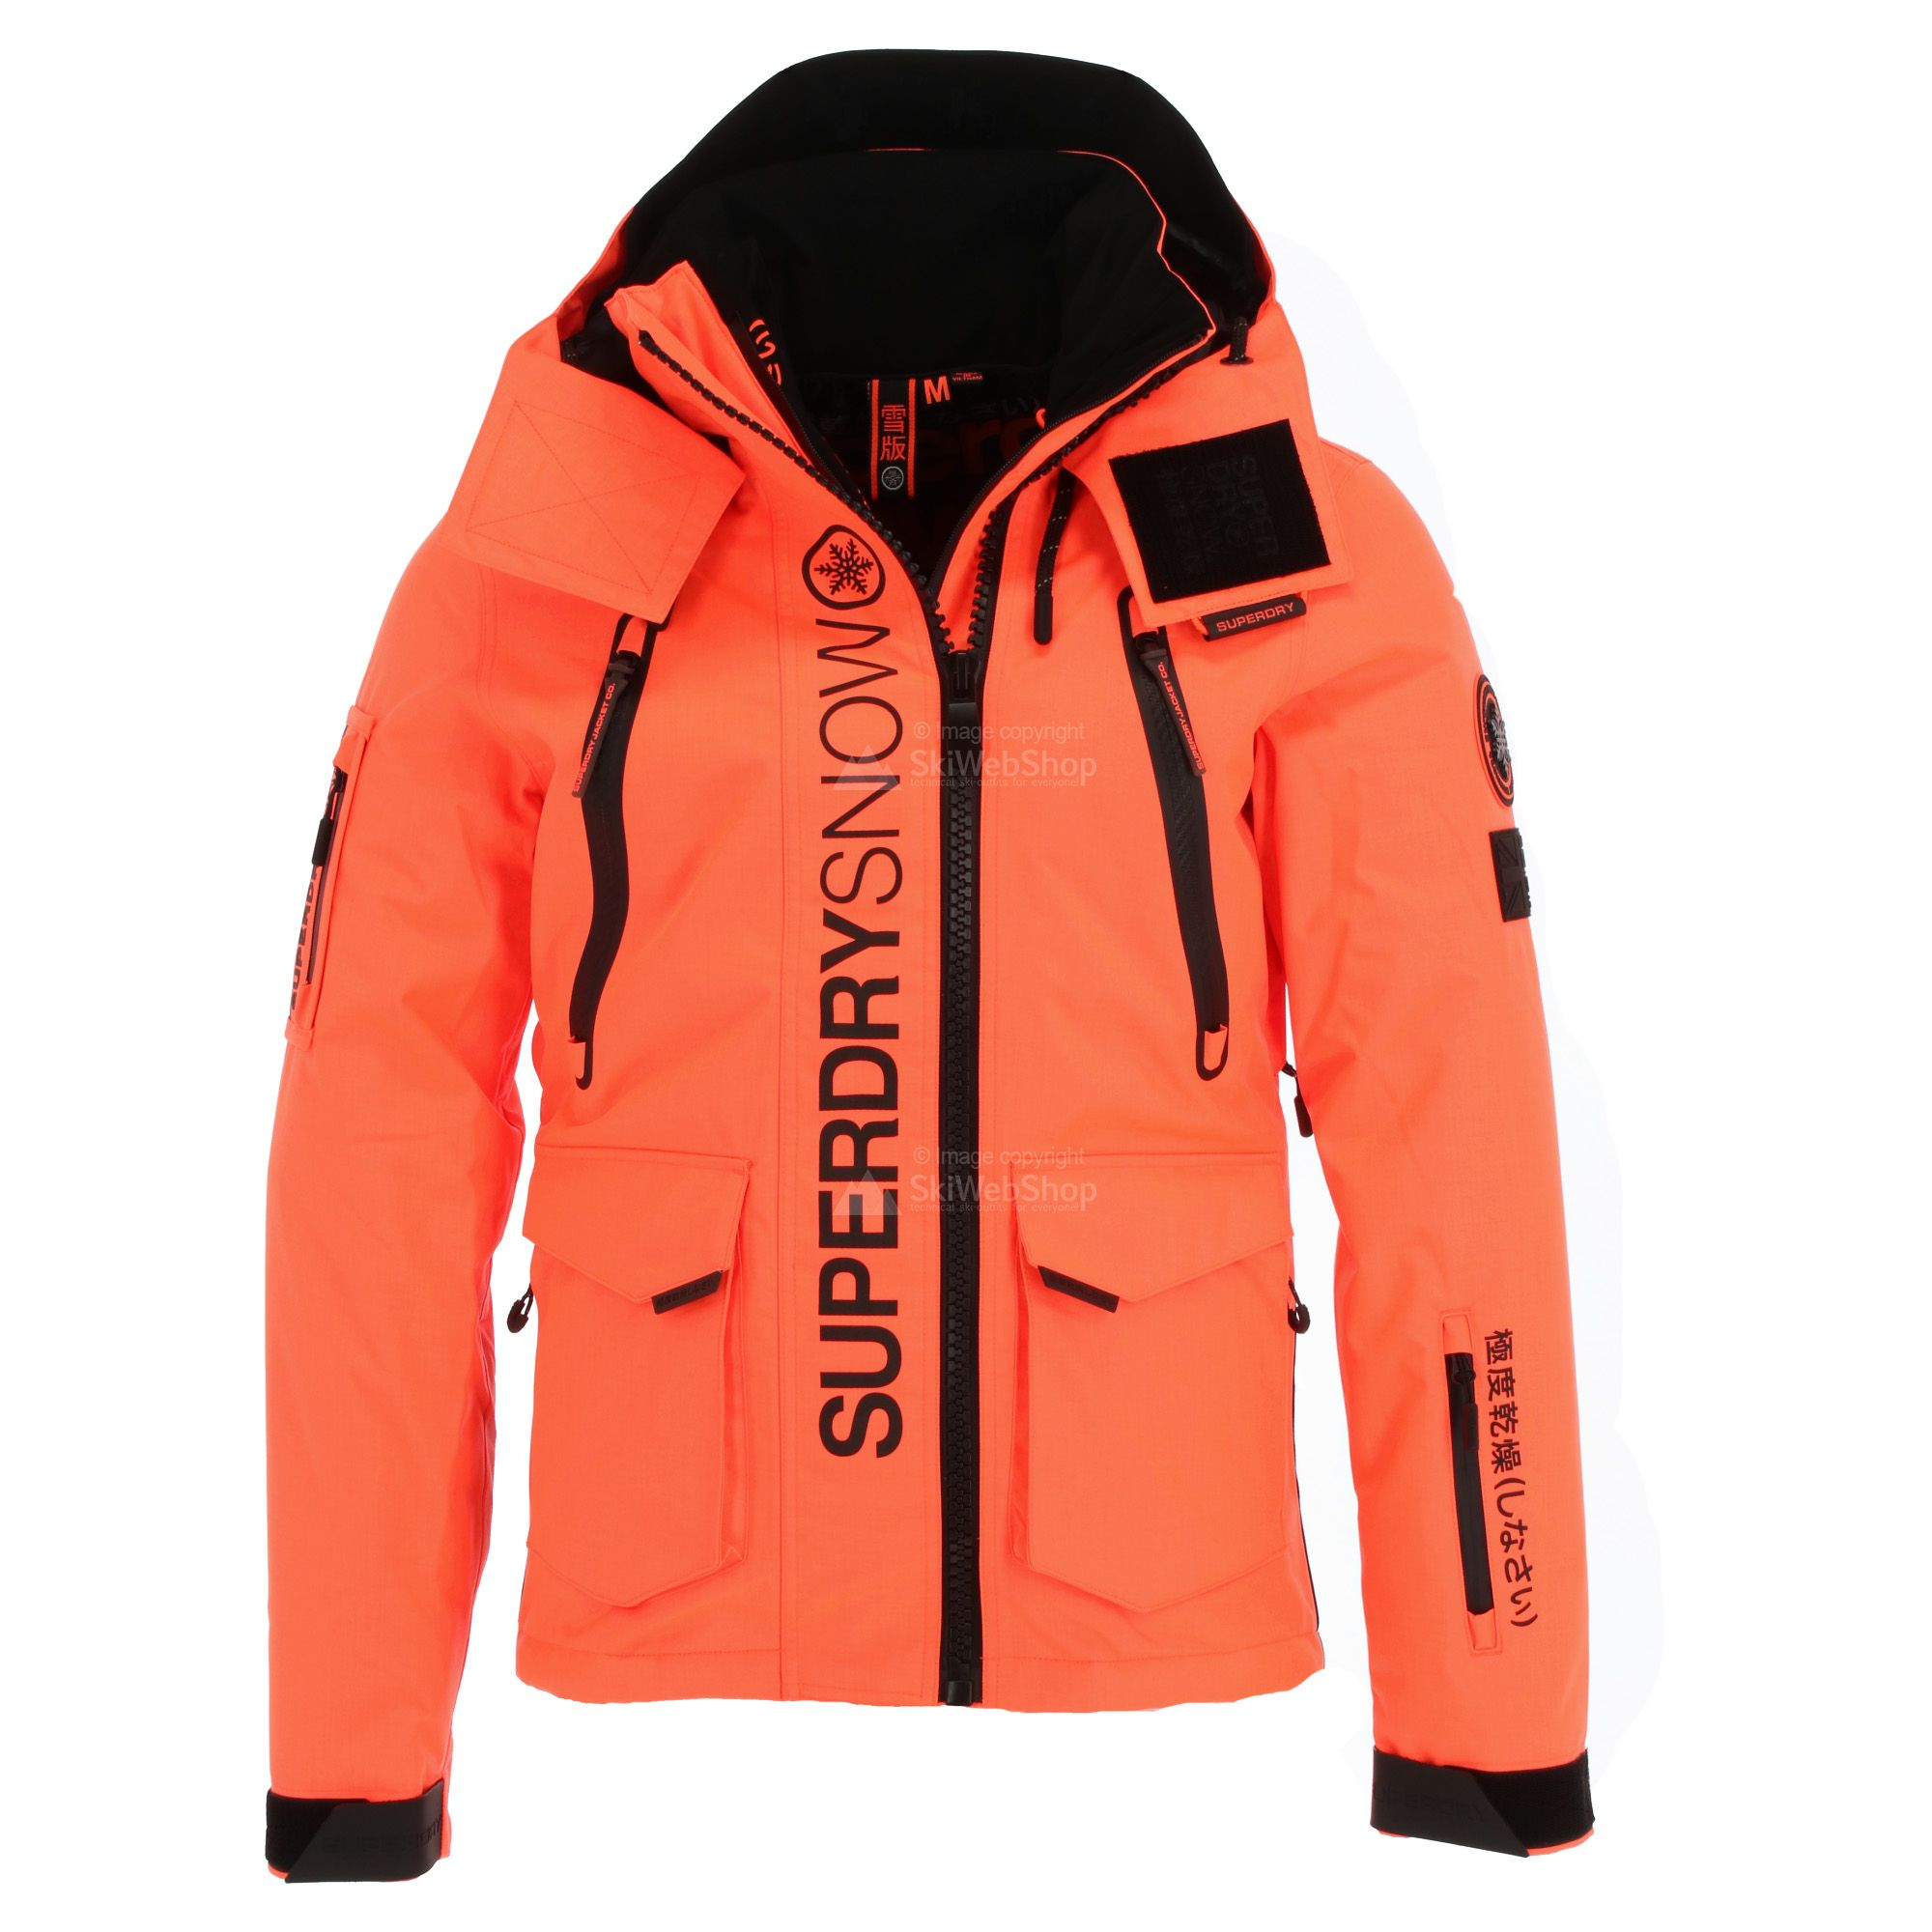 Superdry Ultimate Snow Rescue Ski Jacket Men Hyper Orange Skiwebshopskiwebshop Com